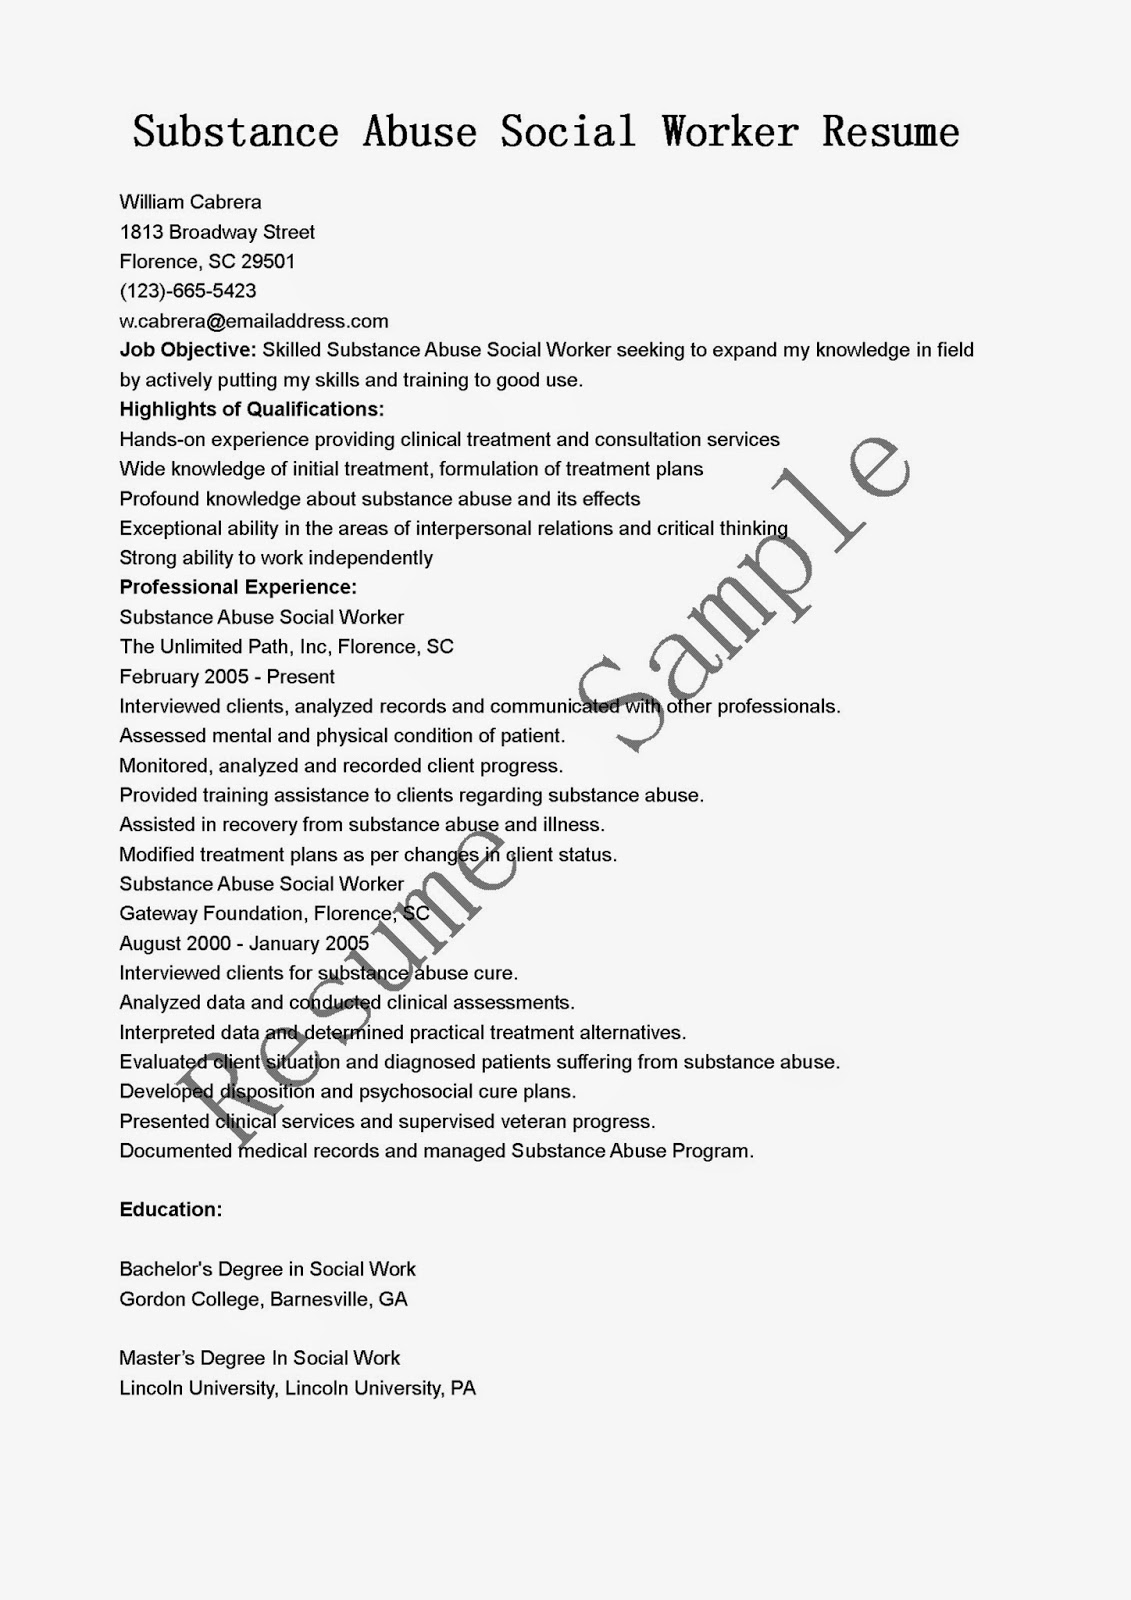 [Social Worker Resume Sampleresume Samples] best case